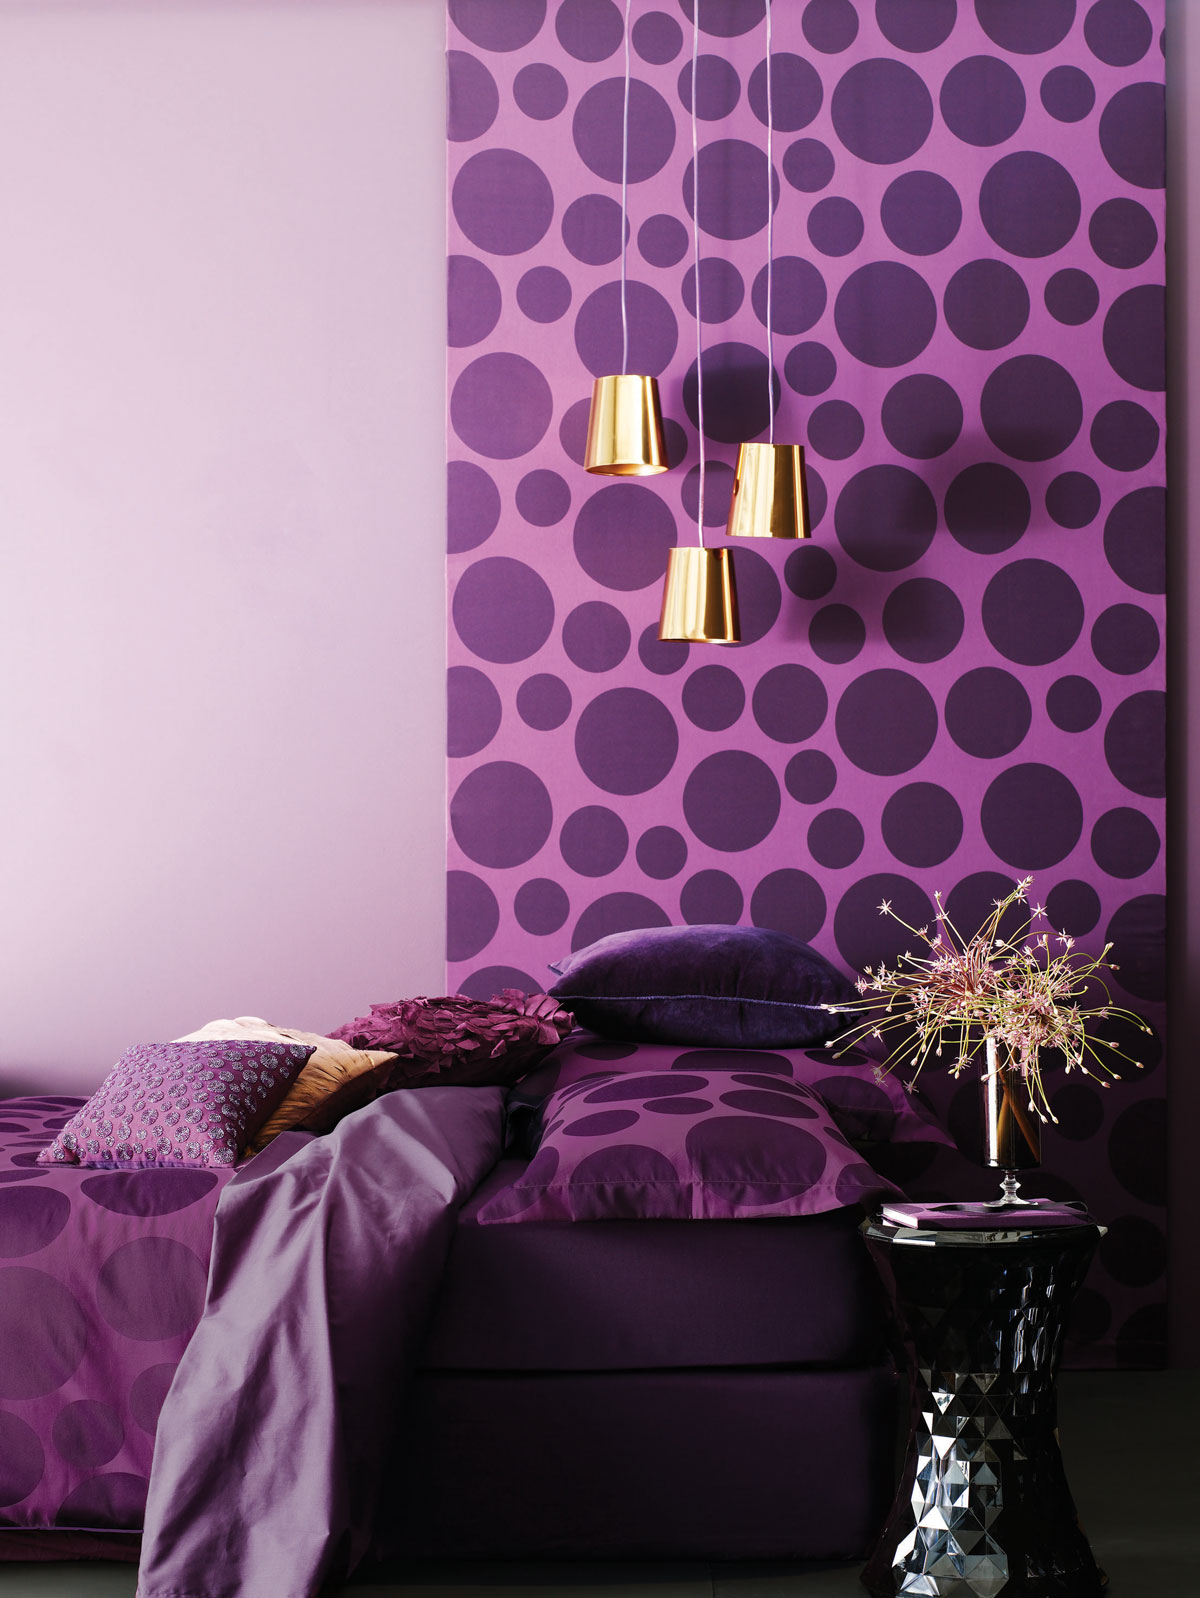 Awesome purple wall decor for bedrooms 1200x1598